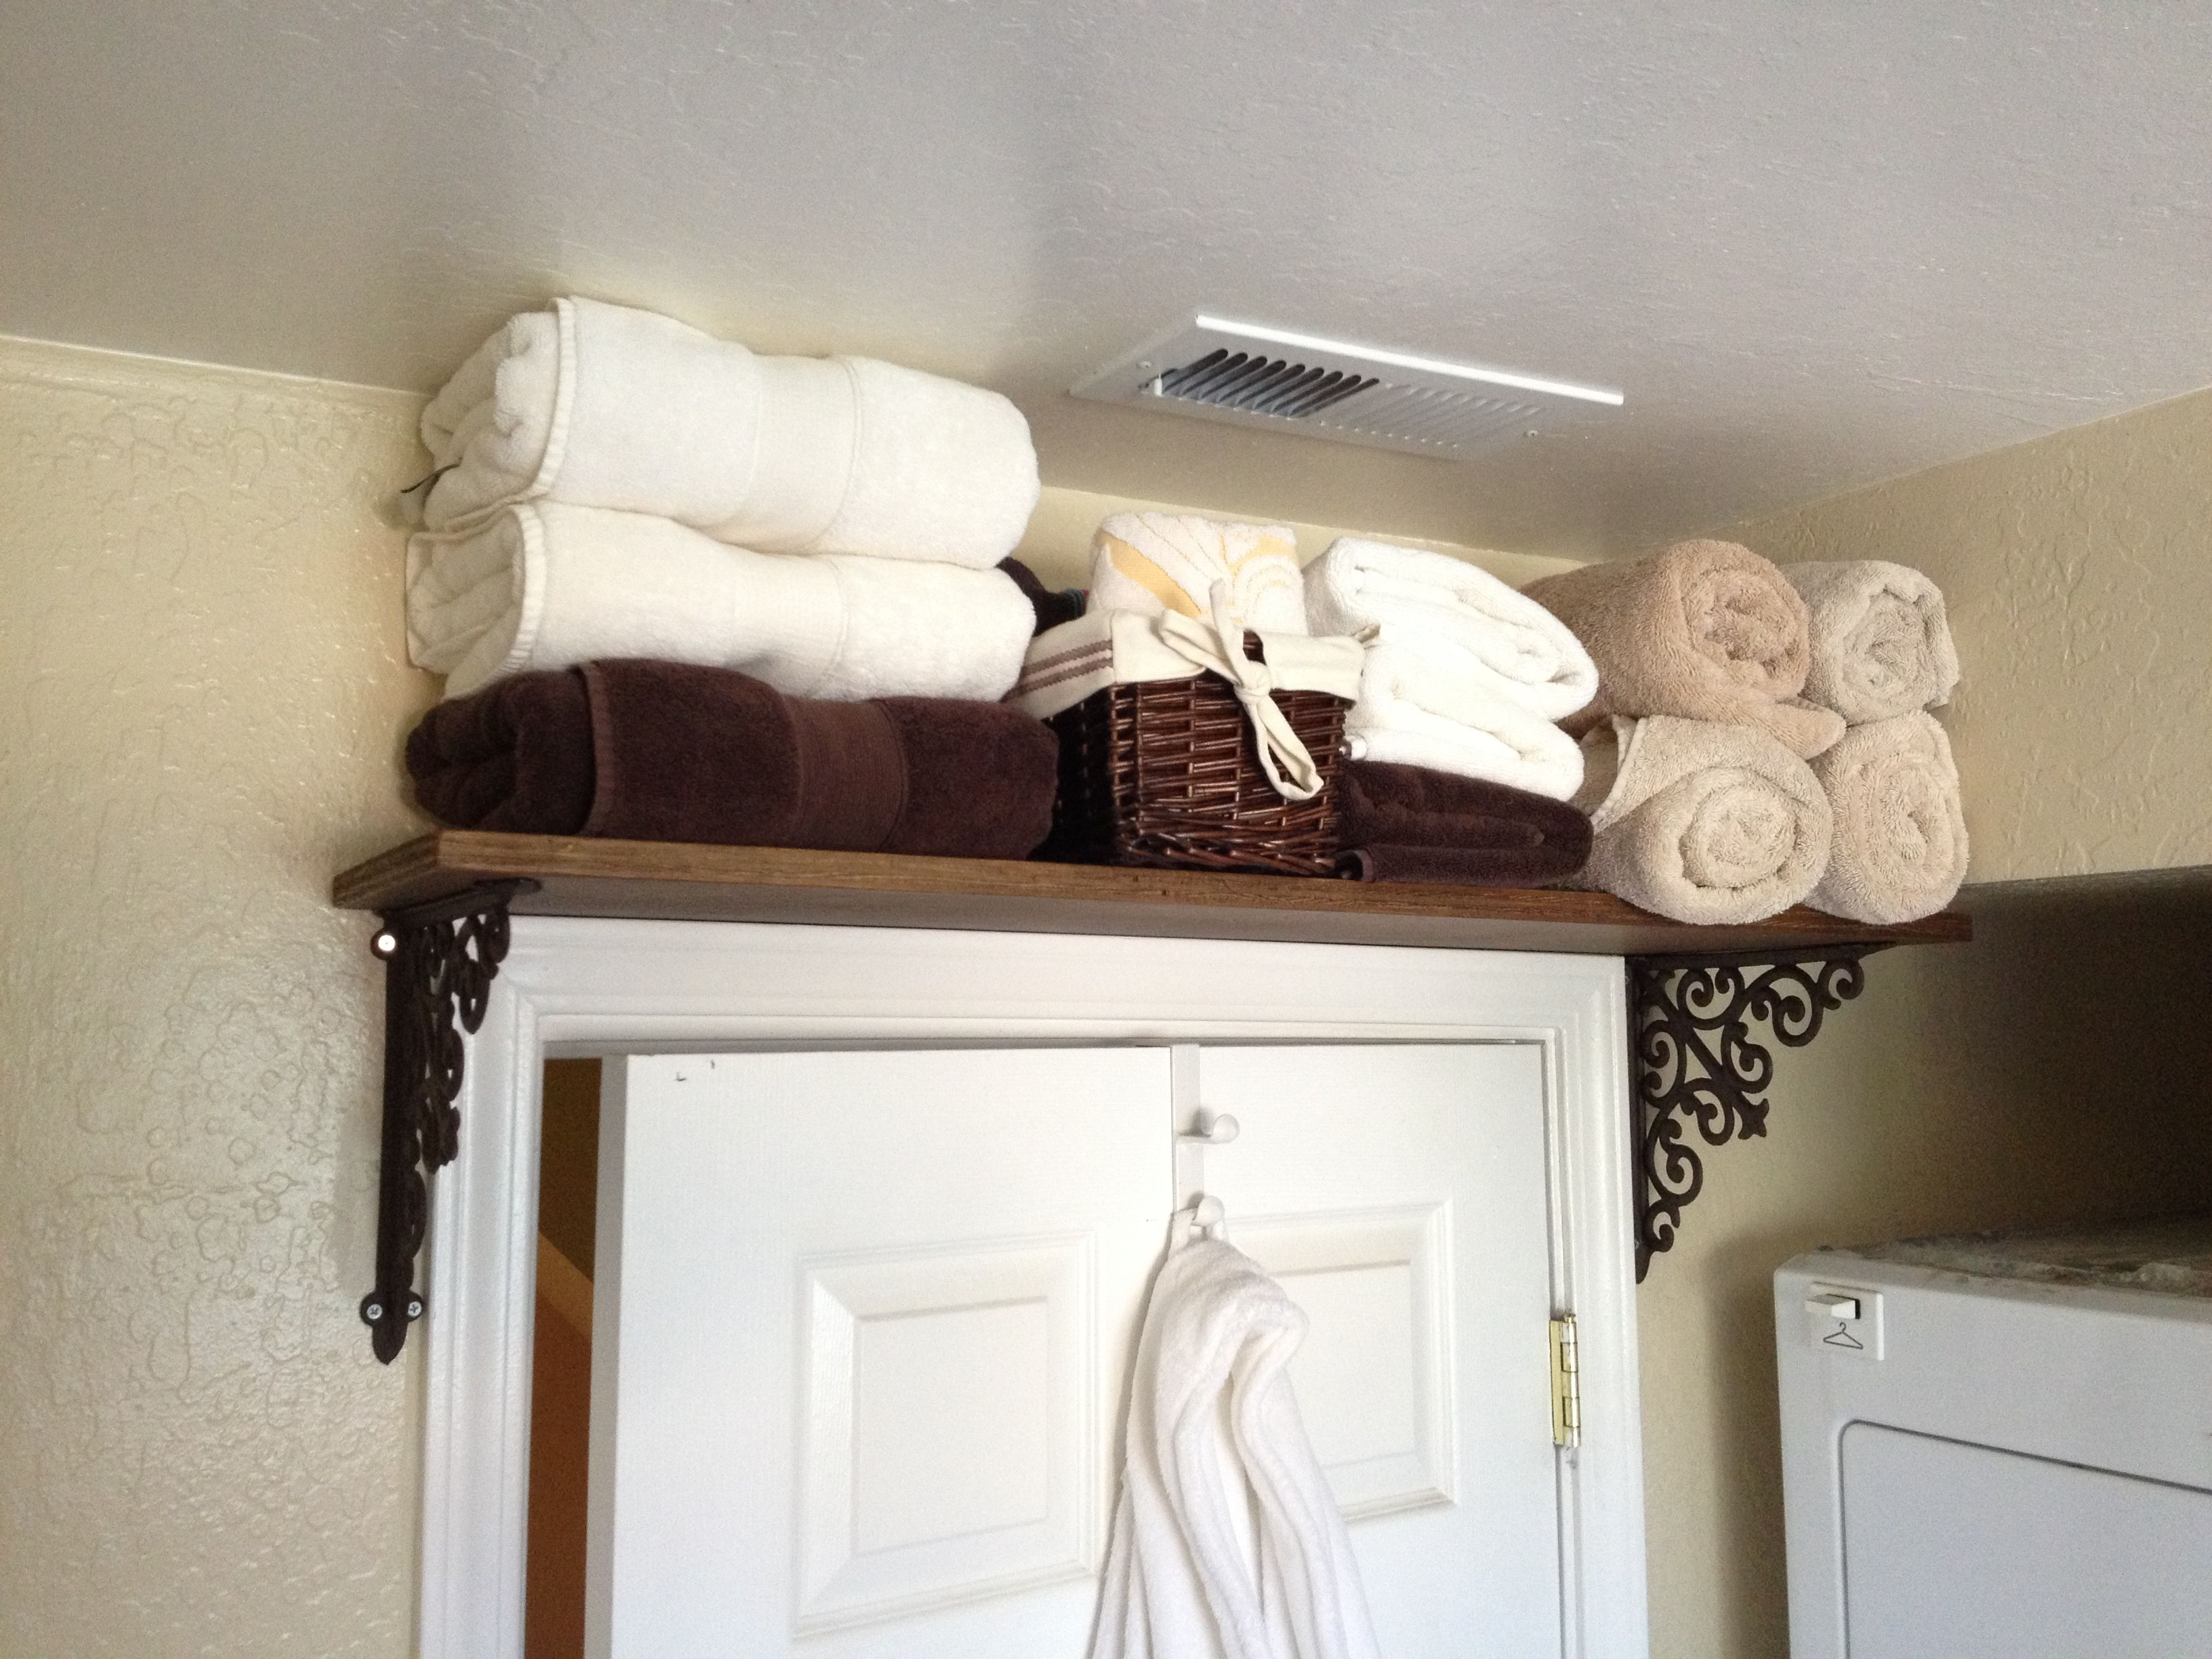 Pin By Melody Miser Varghese On Keeping Life In Order Bathroom Cleaning Hacks Tiny Closet Organization No Closet Solutions